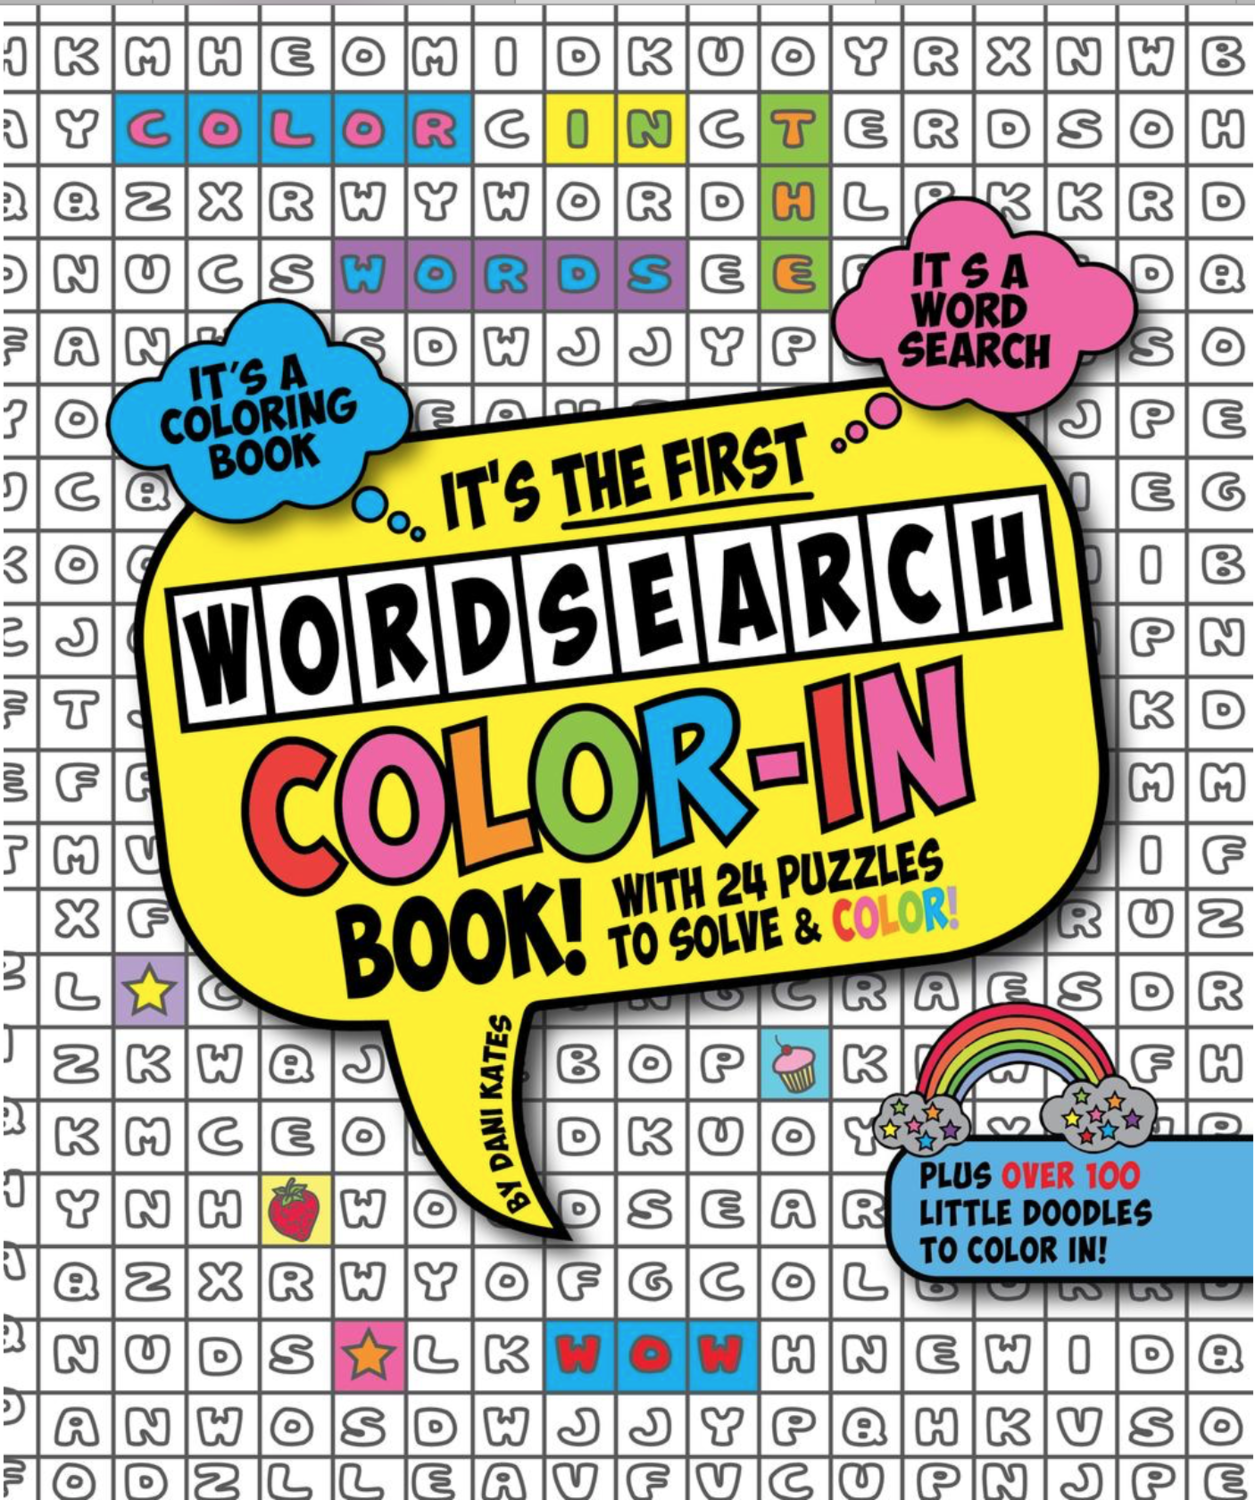 Word Search Color In